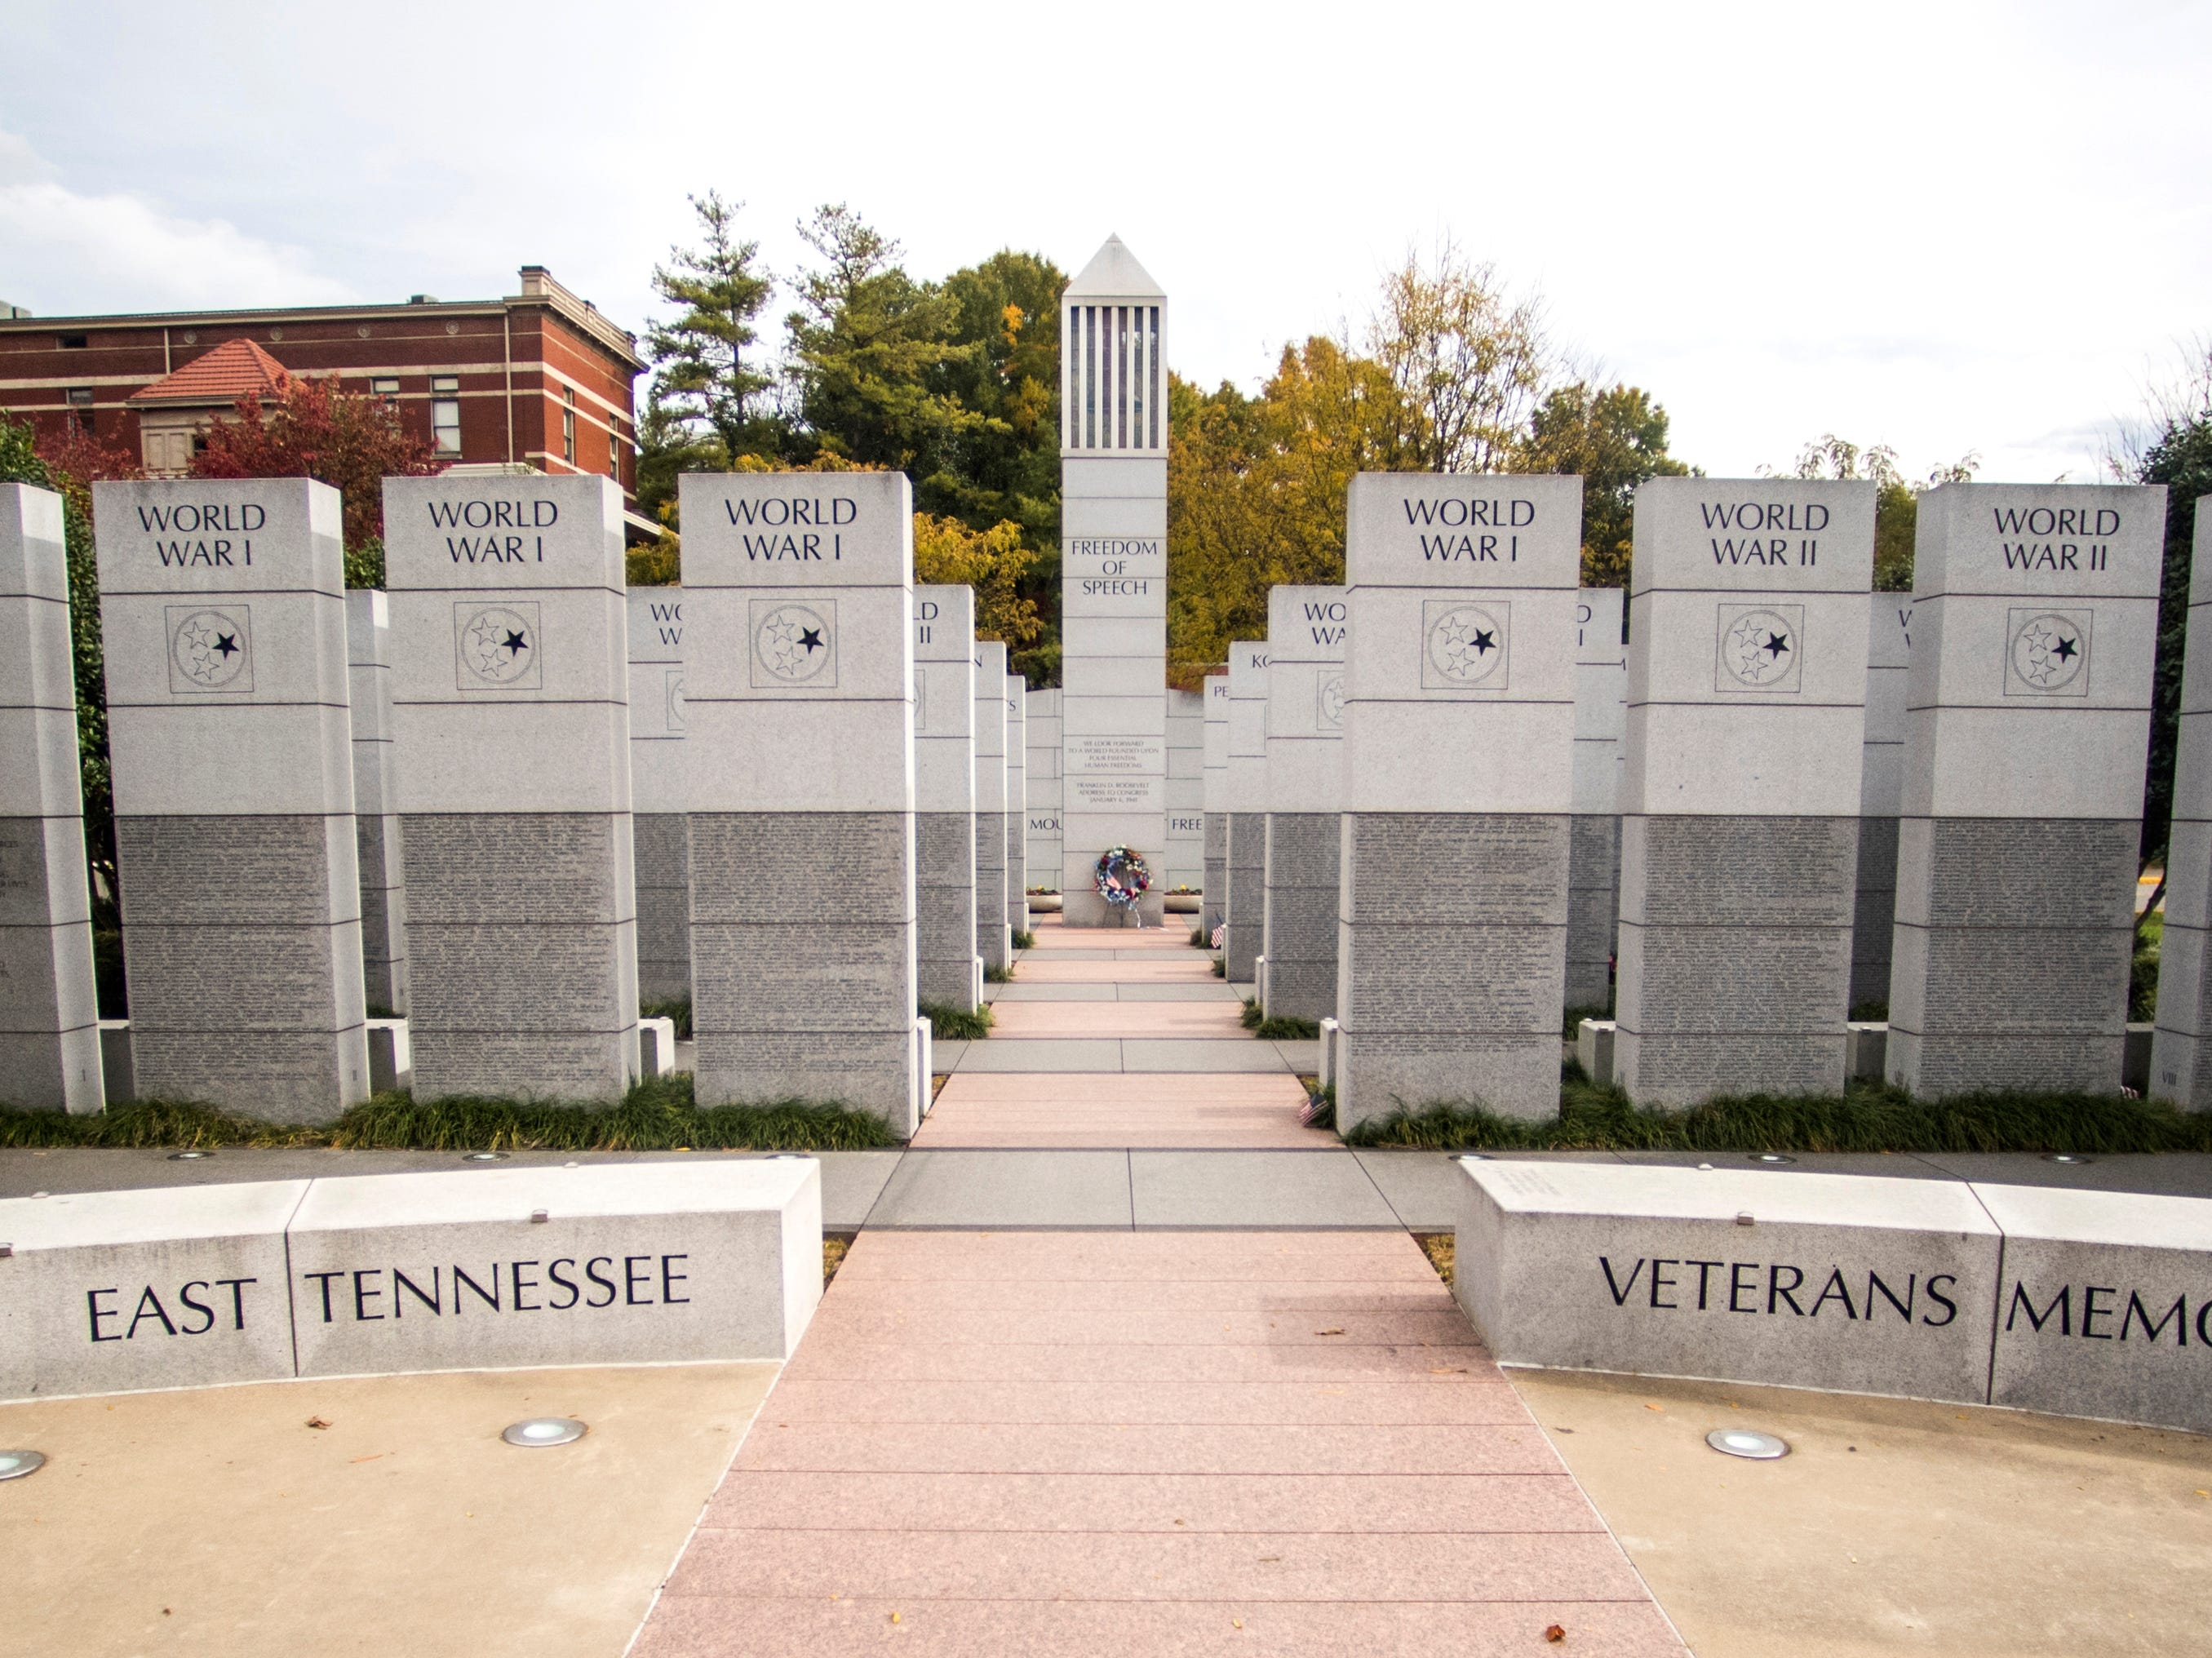 The East Tennessee Veterans Memorial located in downtown Knoxville on Thursday, November 1, 2018.